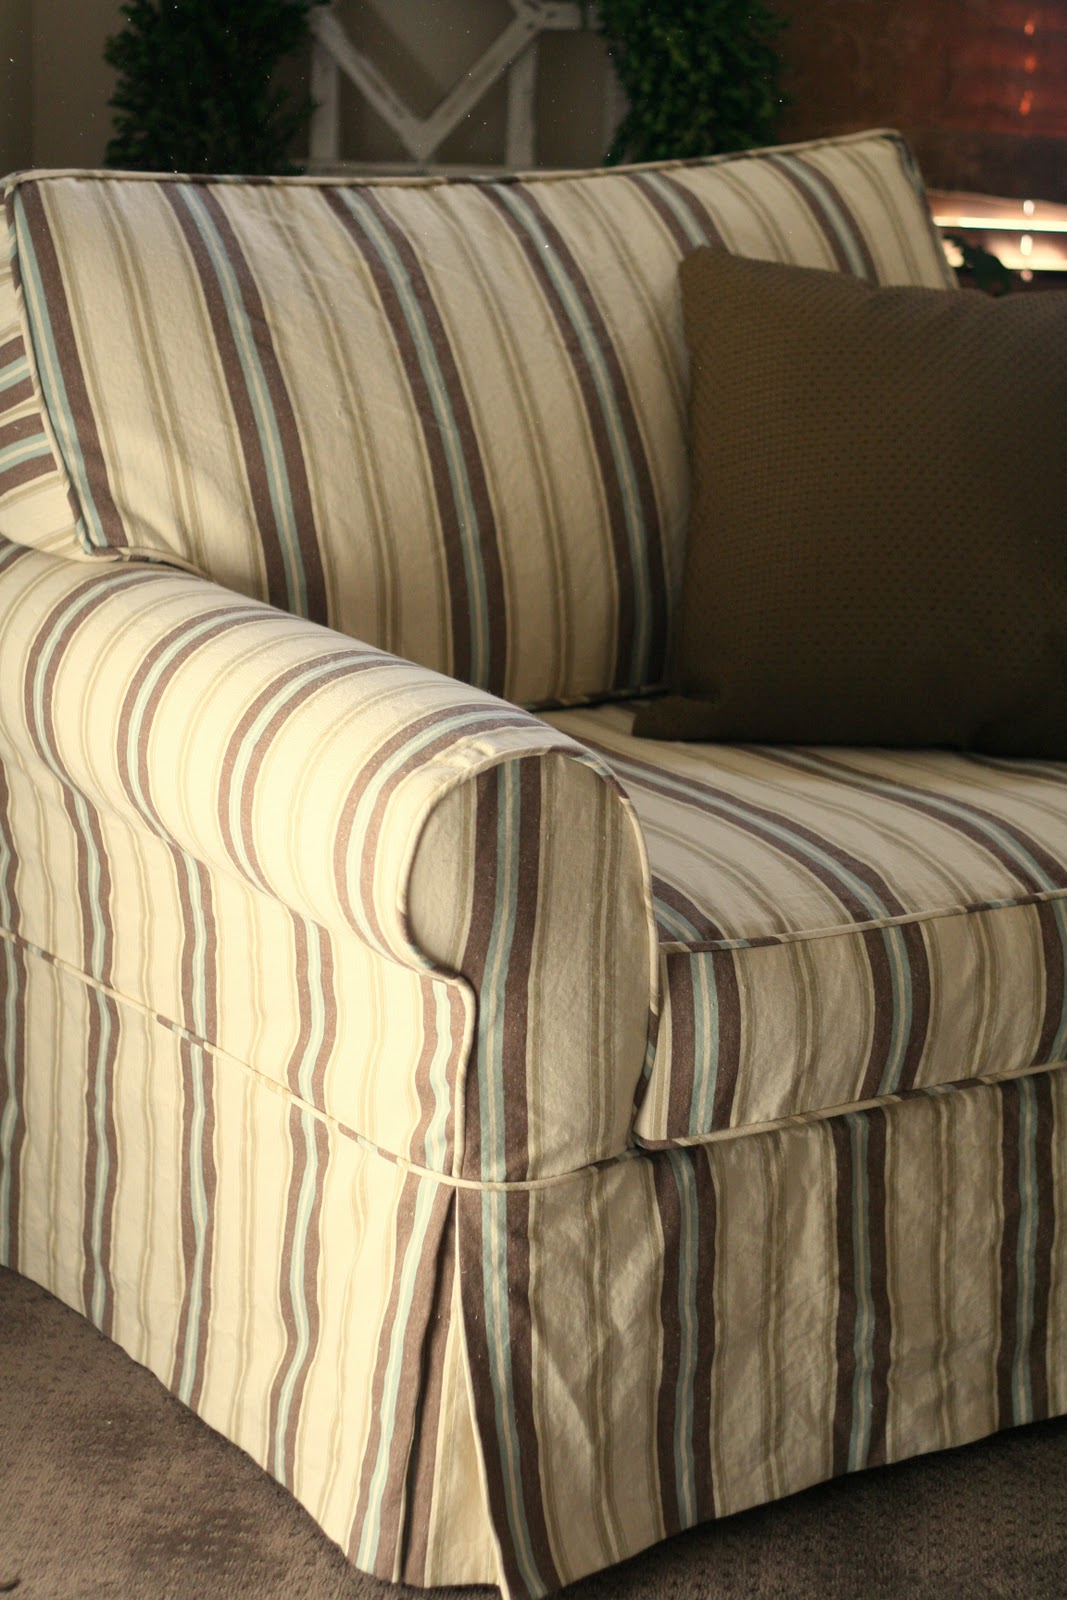 Custom Slipcovers by Shelley: Striped Oversized Chair